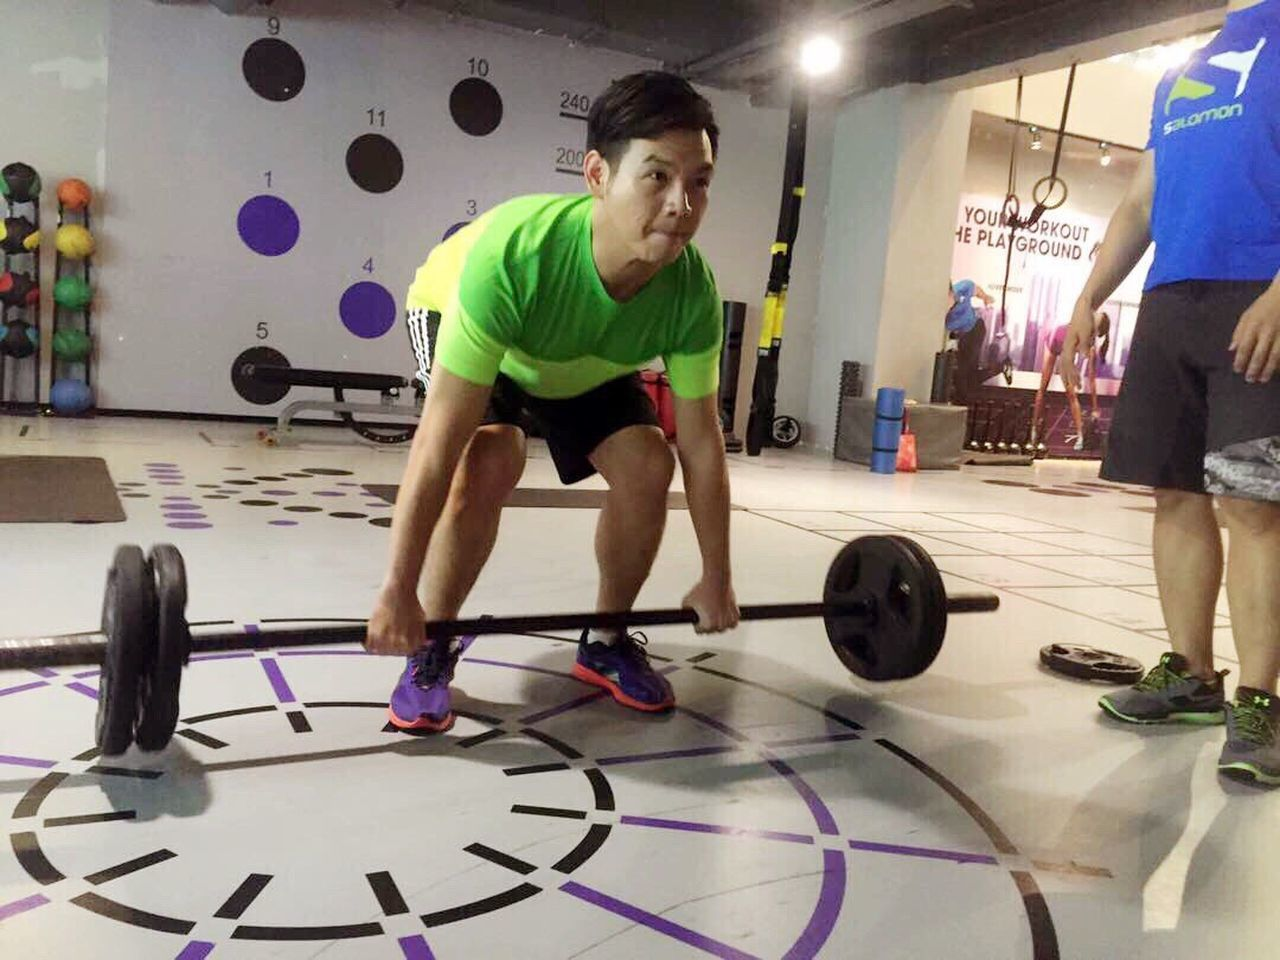 Exercising Gym Lifestyles Full Length Indoors  Healthy Lifestyle Only Men Self Improvement Adults Only Adult Standing Leisure Activity Sports Clothing Exercise Equipment People Sport Dedication One Man Only Real People One Person